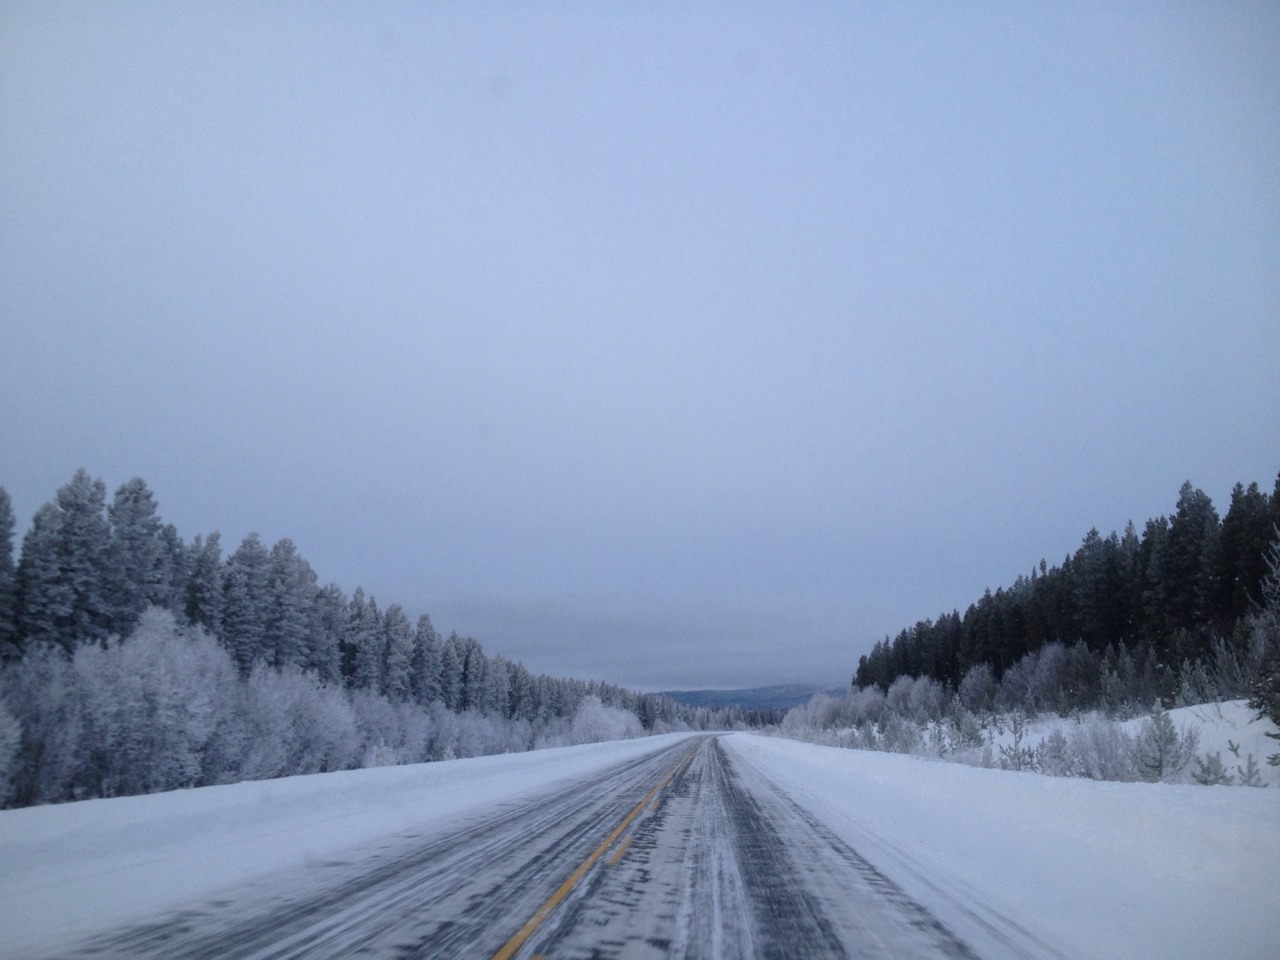 The road to Whitehorse.